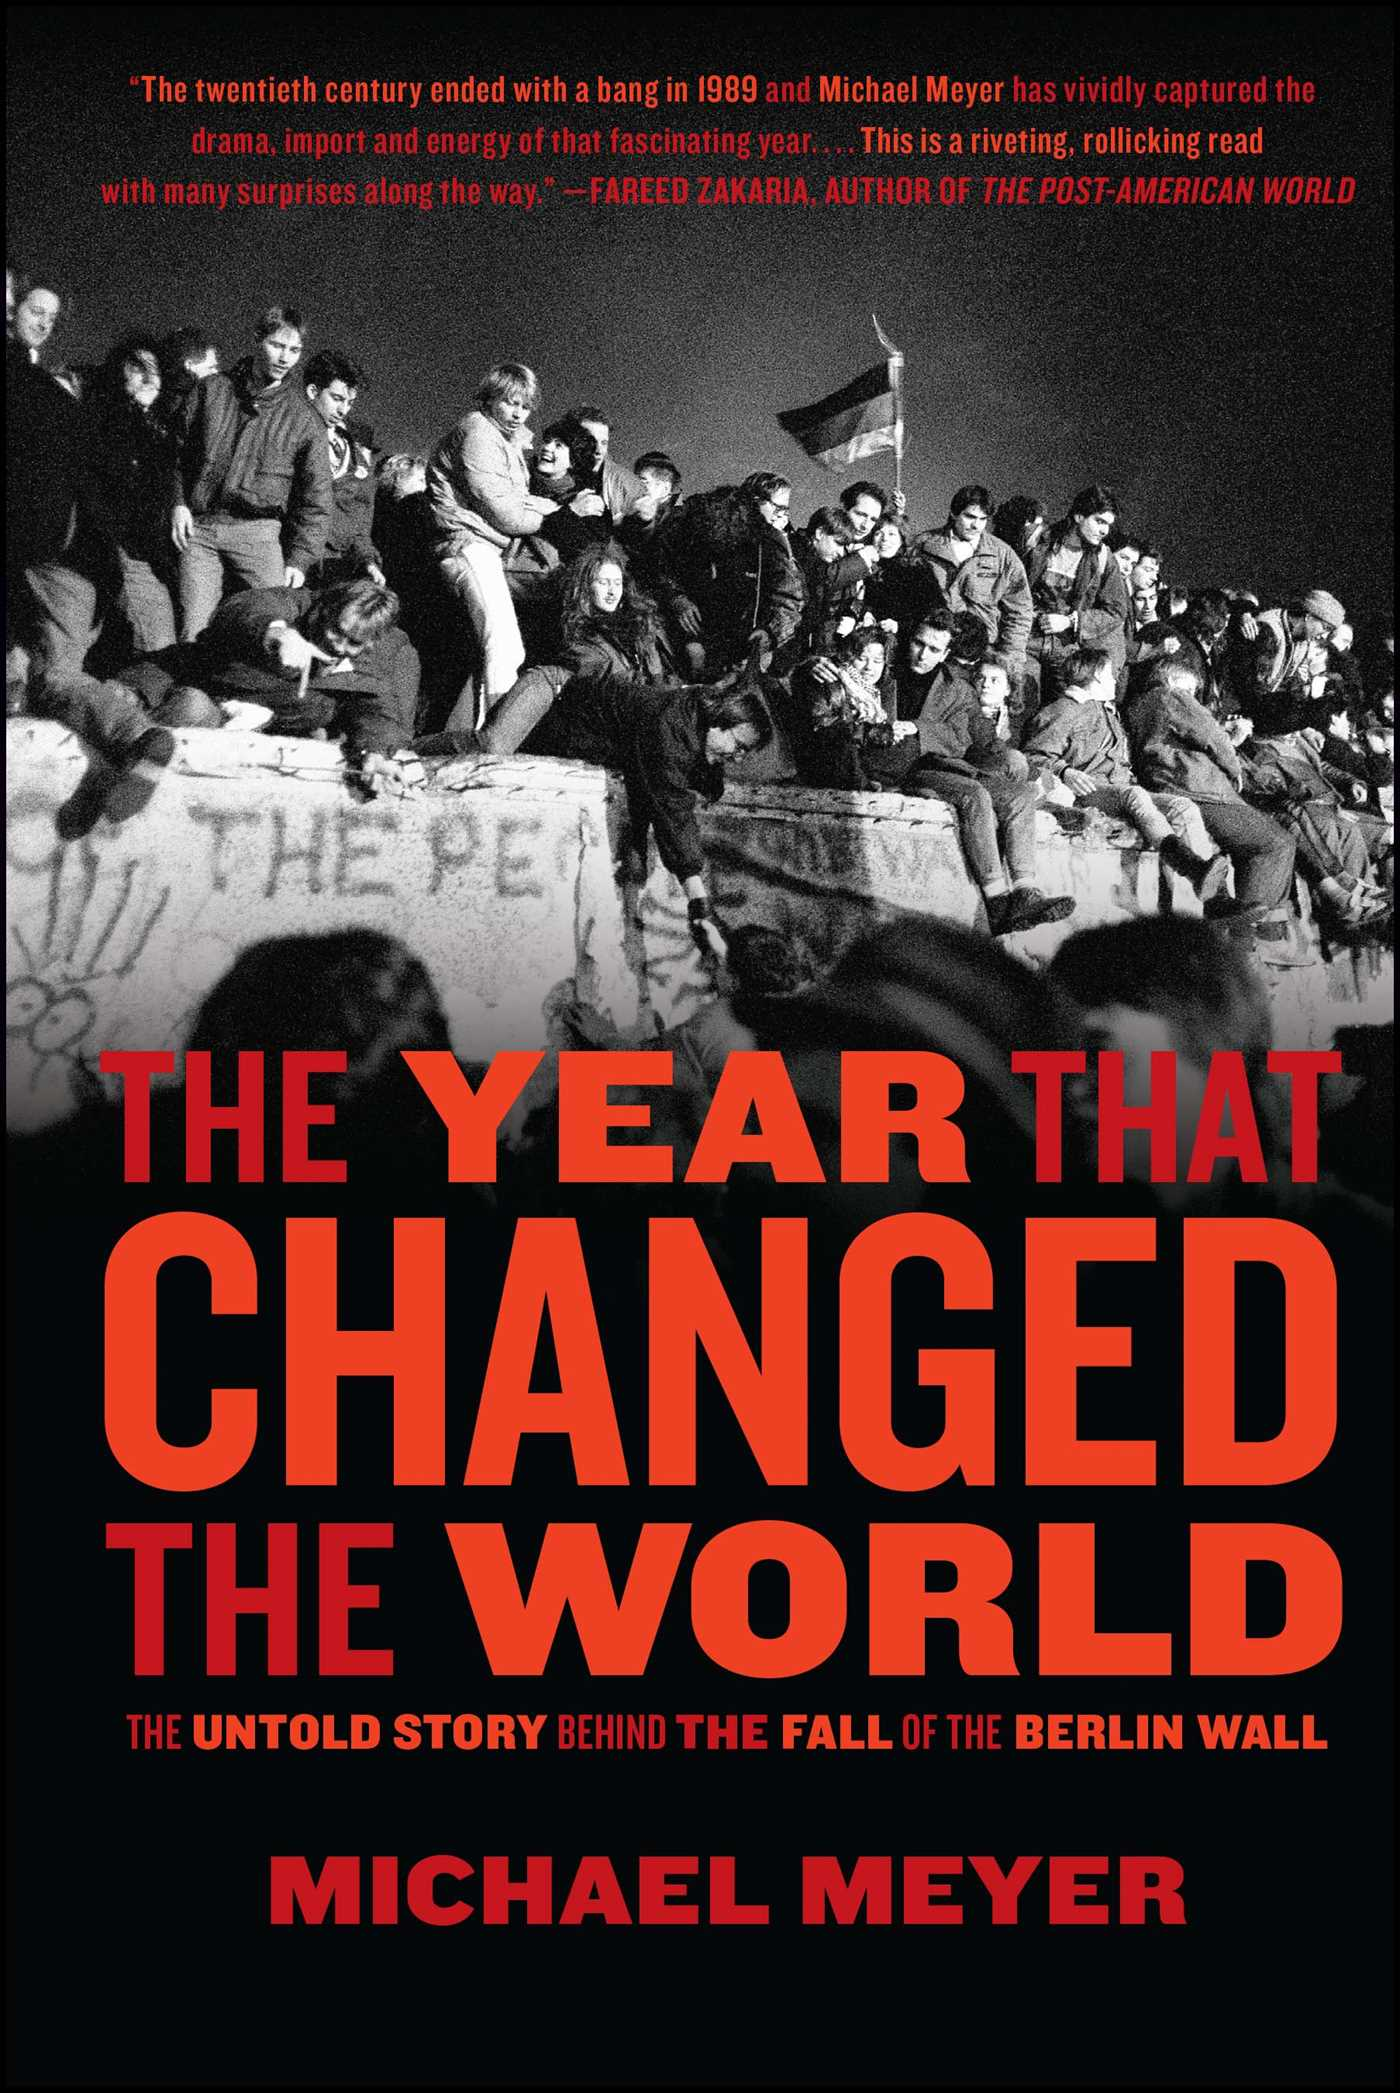 The year that changed the world 9781439100493 hr